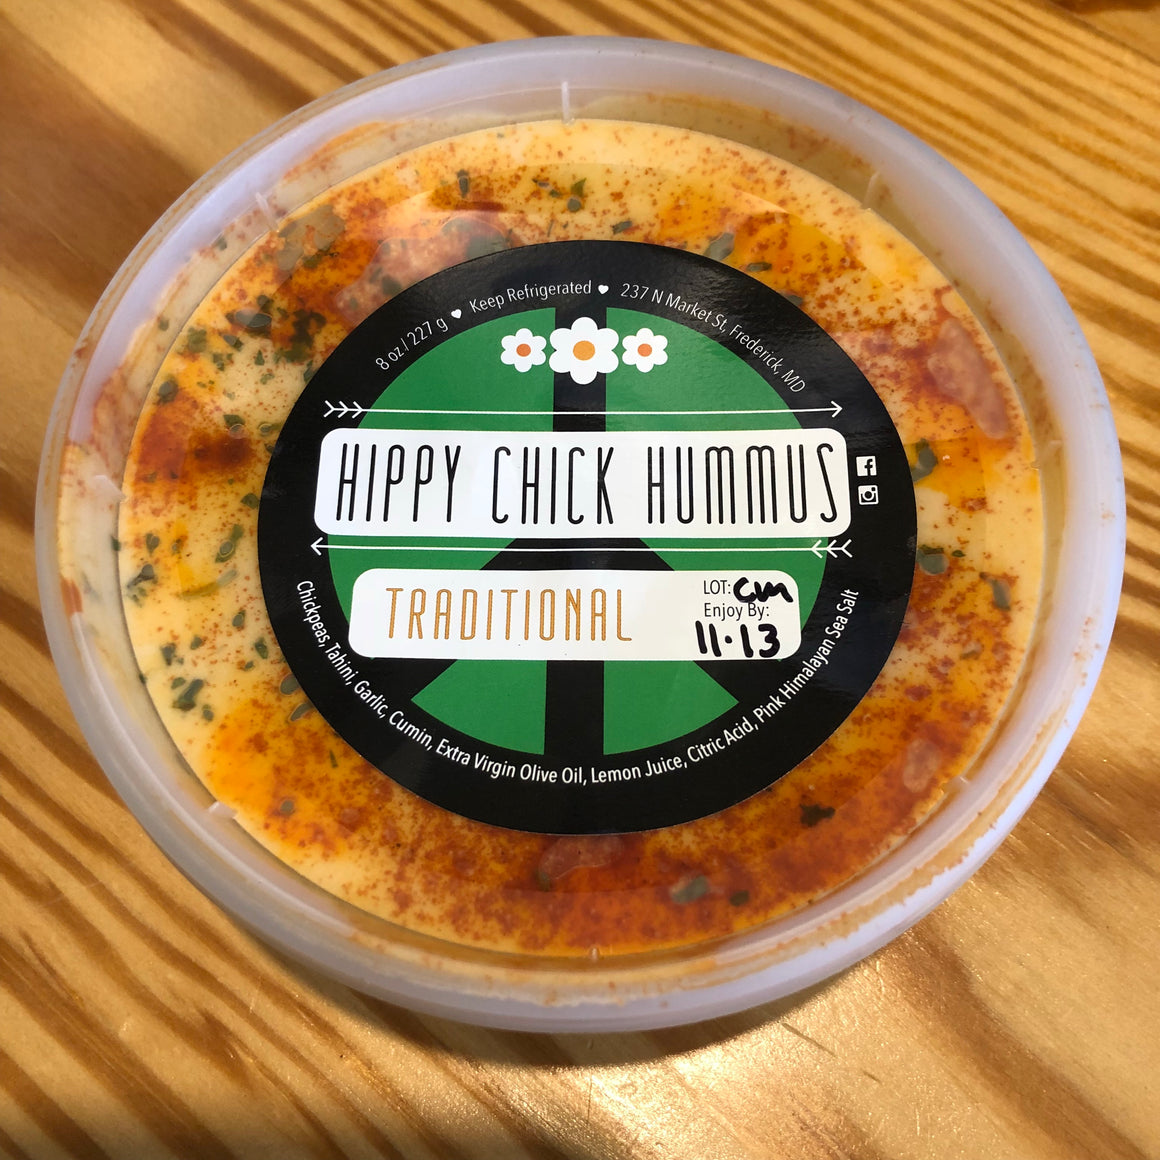 Hippy Chick Hummus